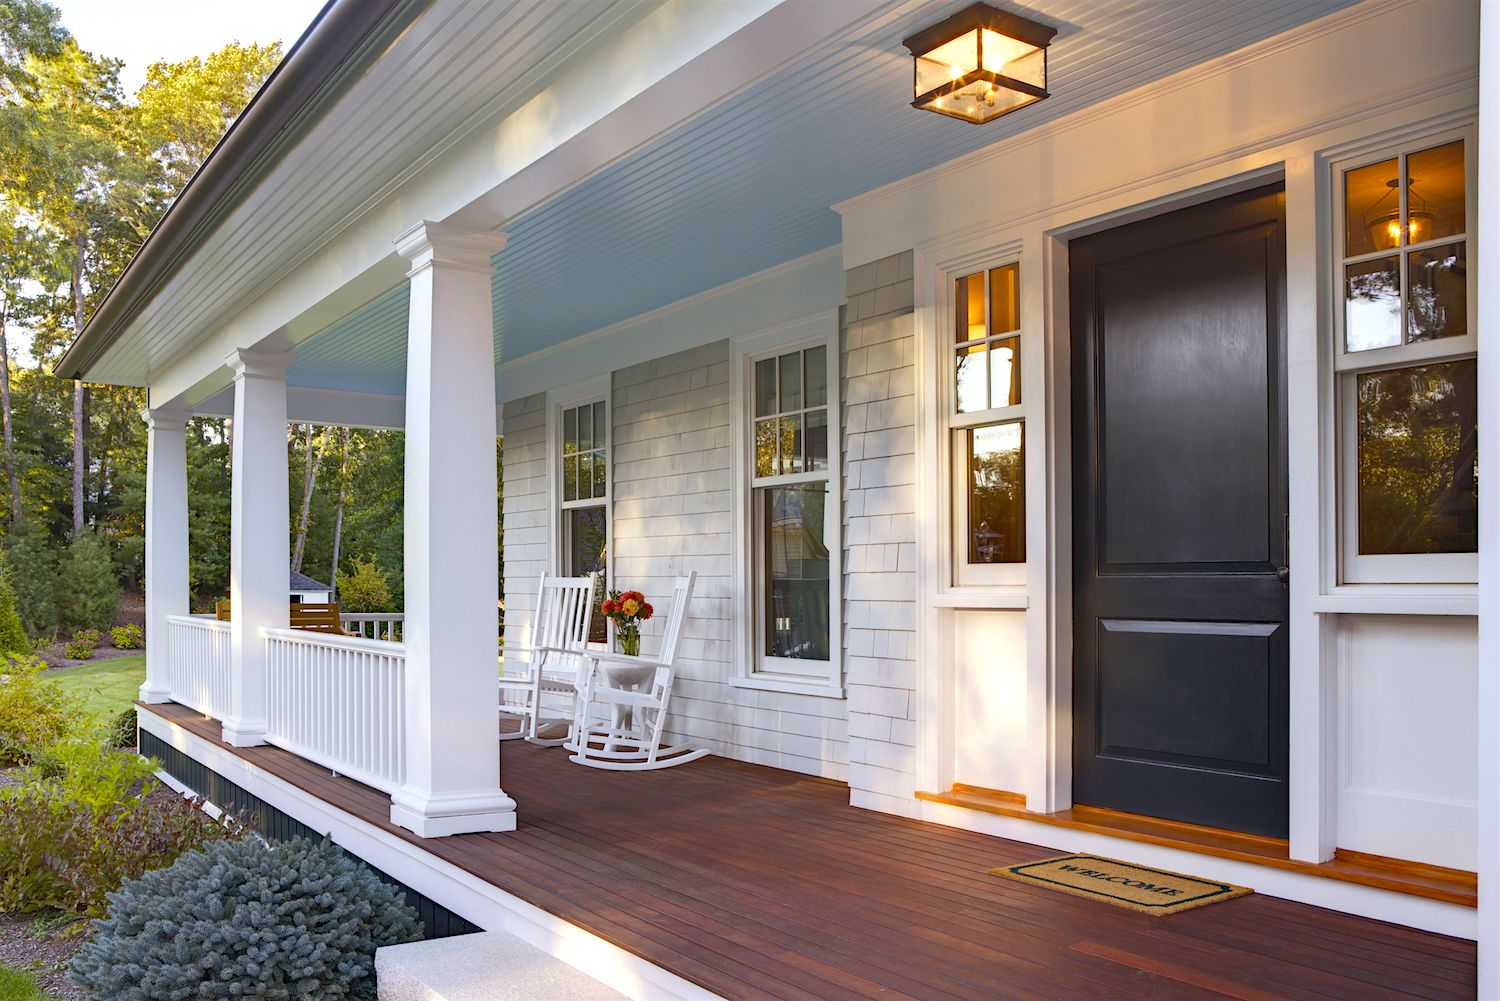 How to Choose Exterior Paint Colors with a Visualizer